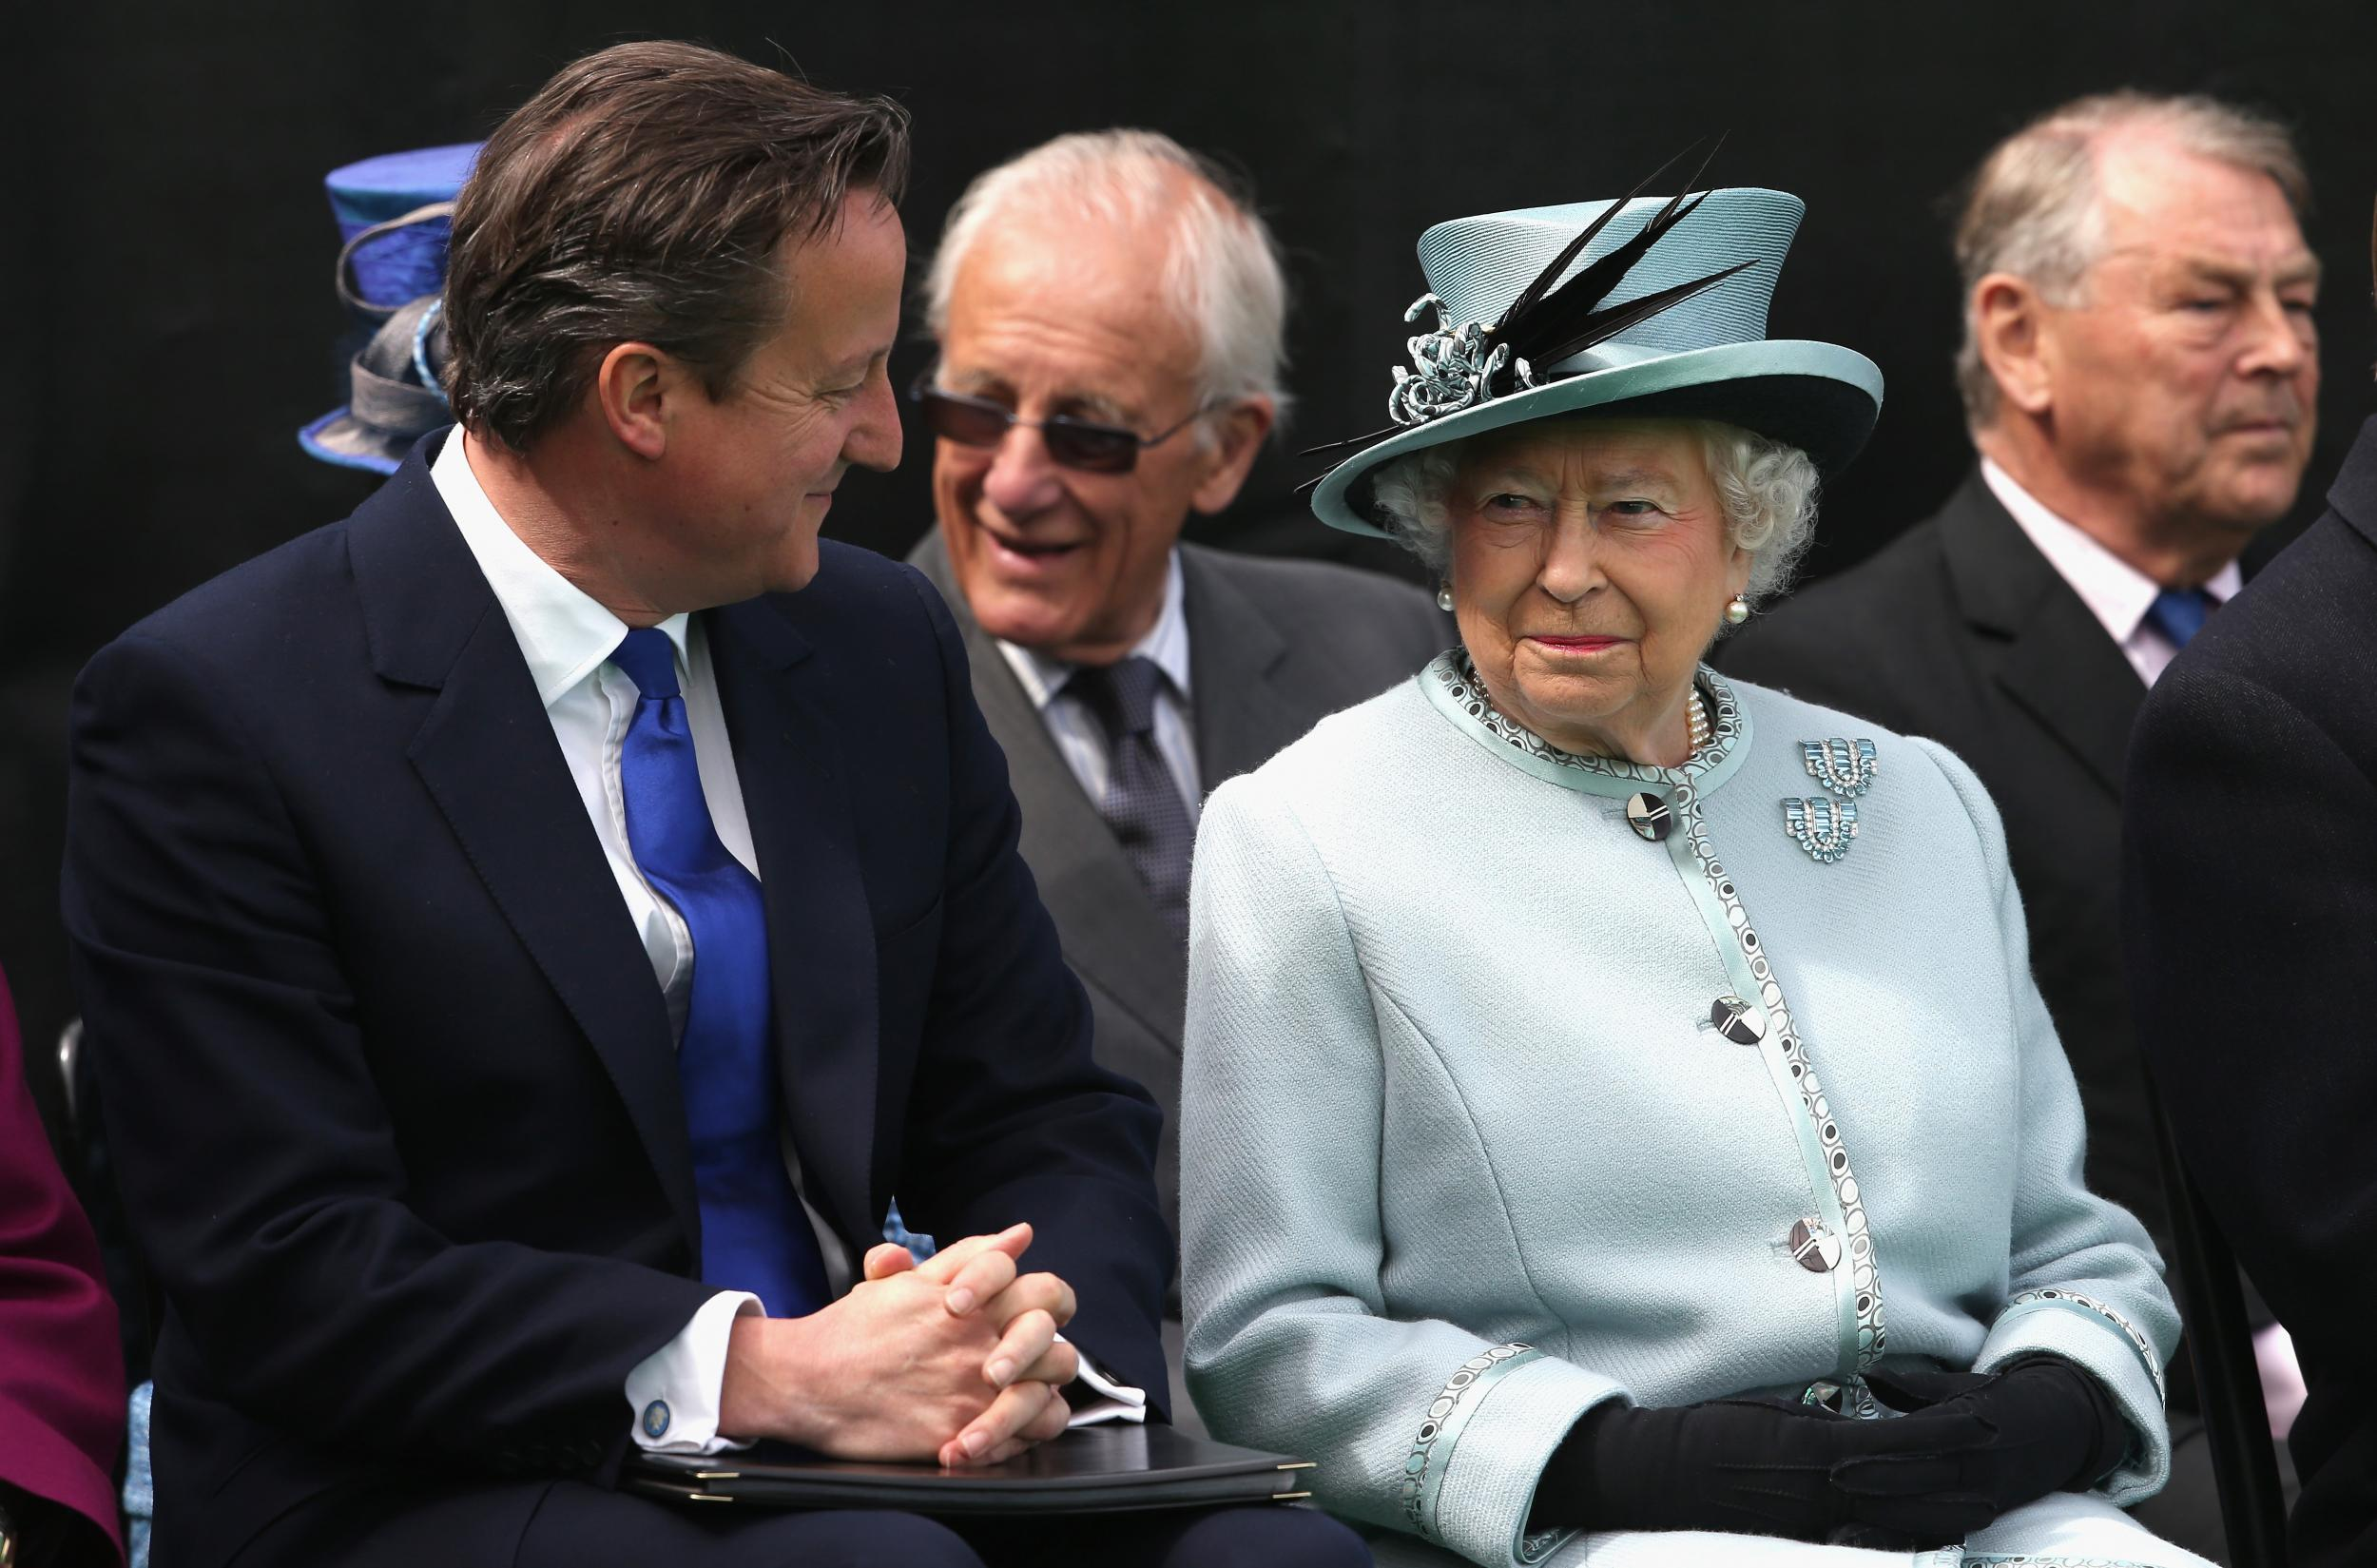 David Cameron explains why he asked Queen to intervene in Scottish referendum and admits 'terrible mistake' over phone call revelation